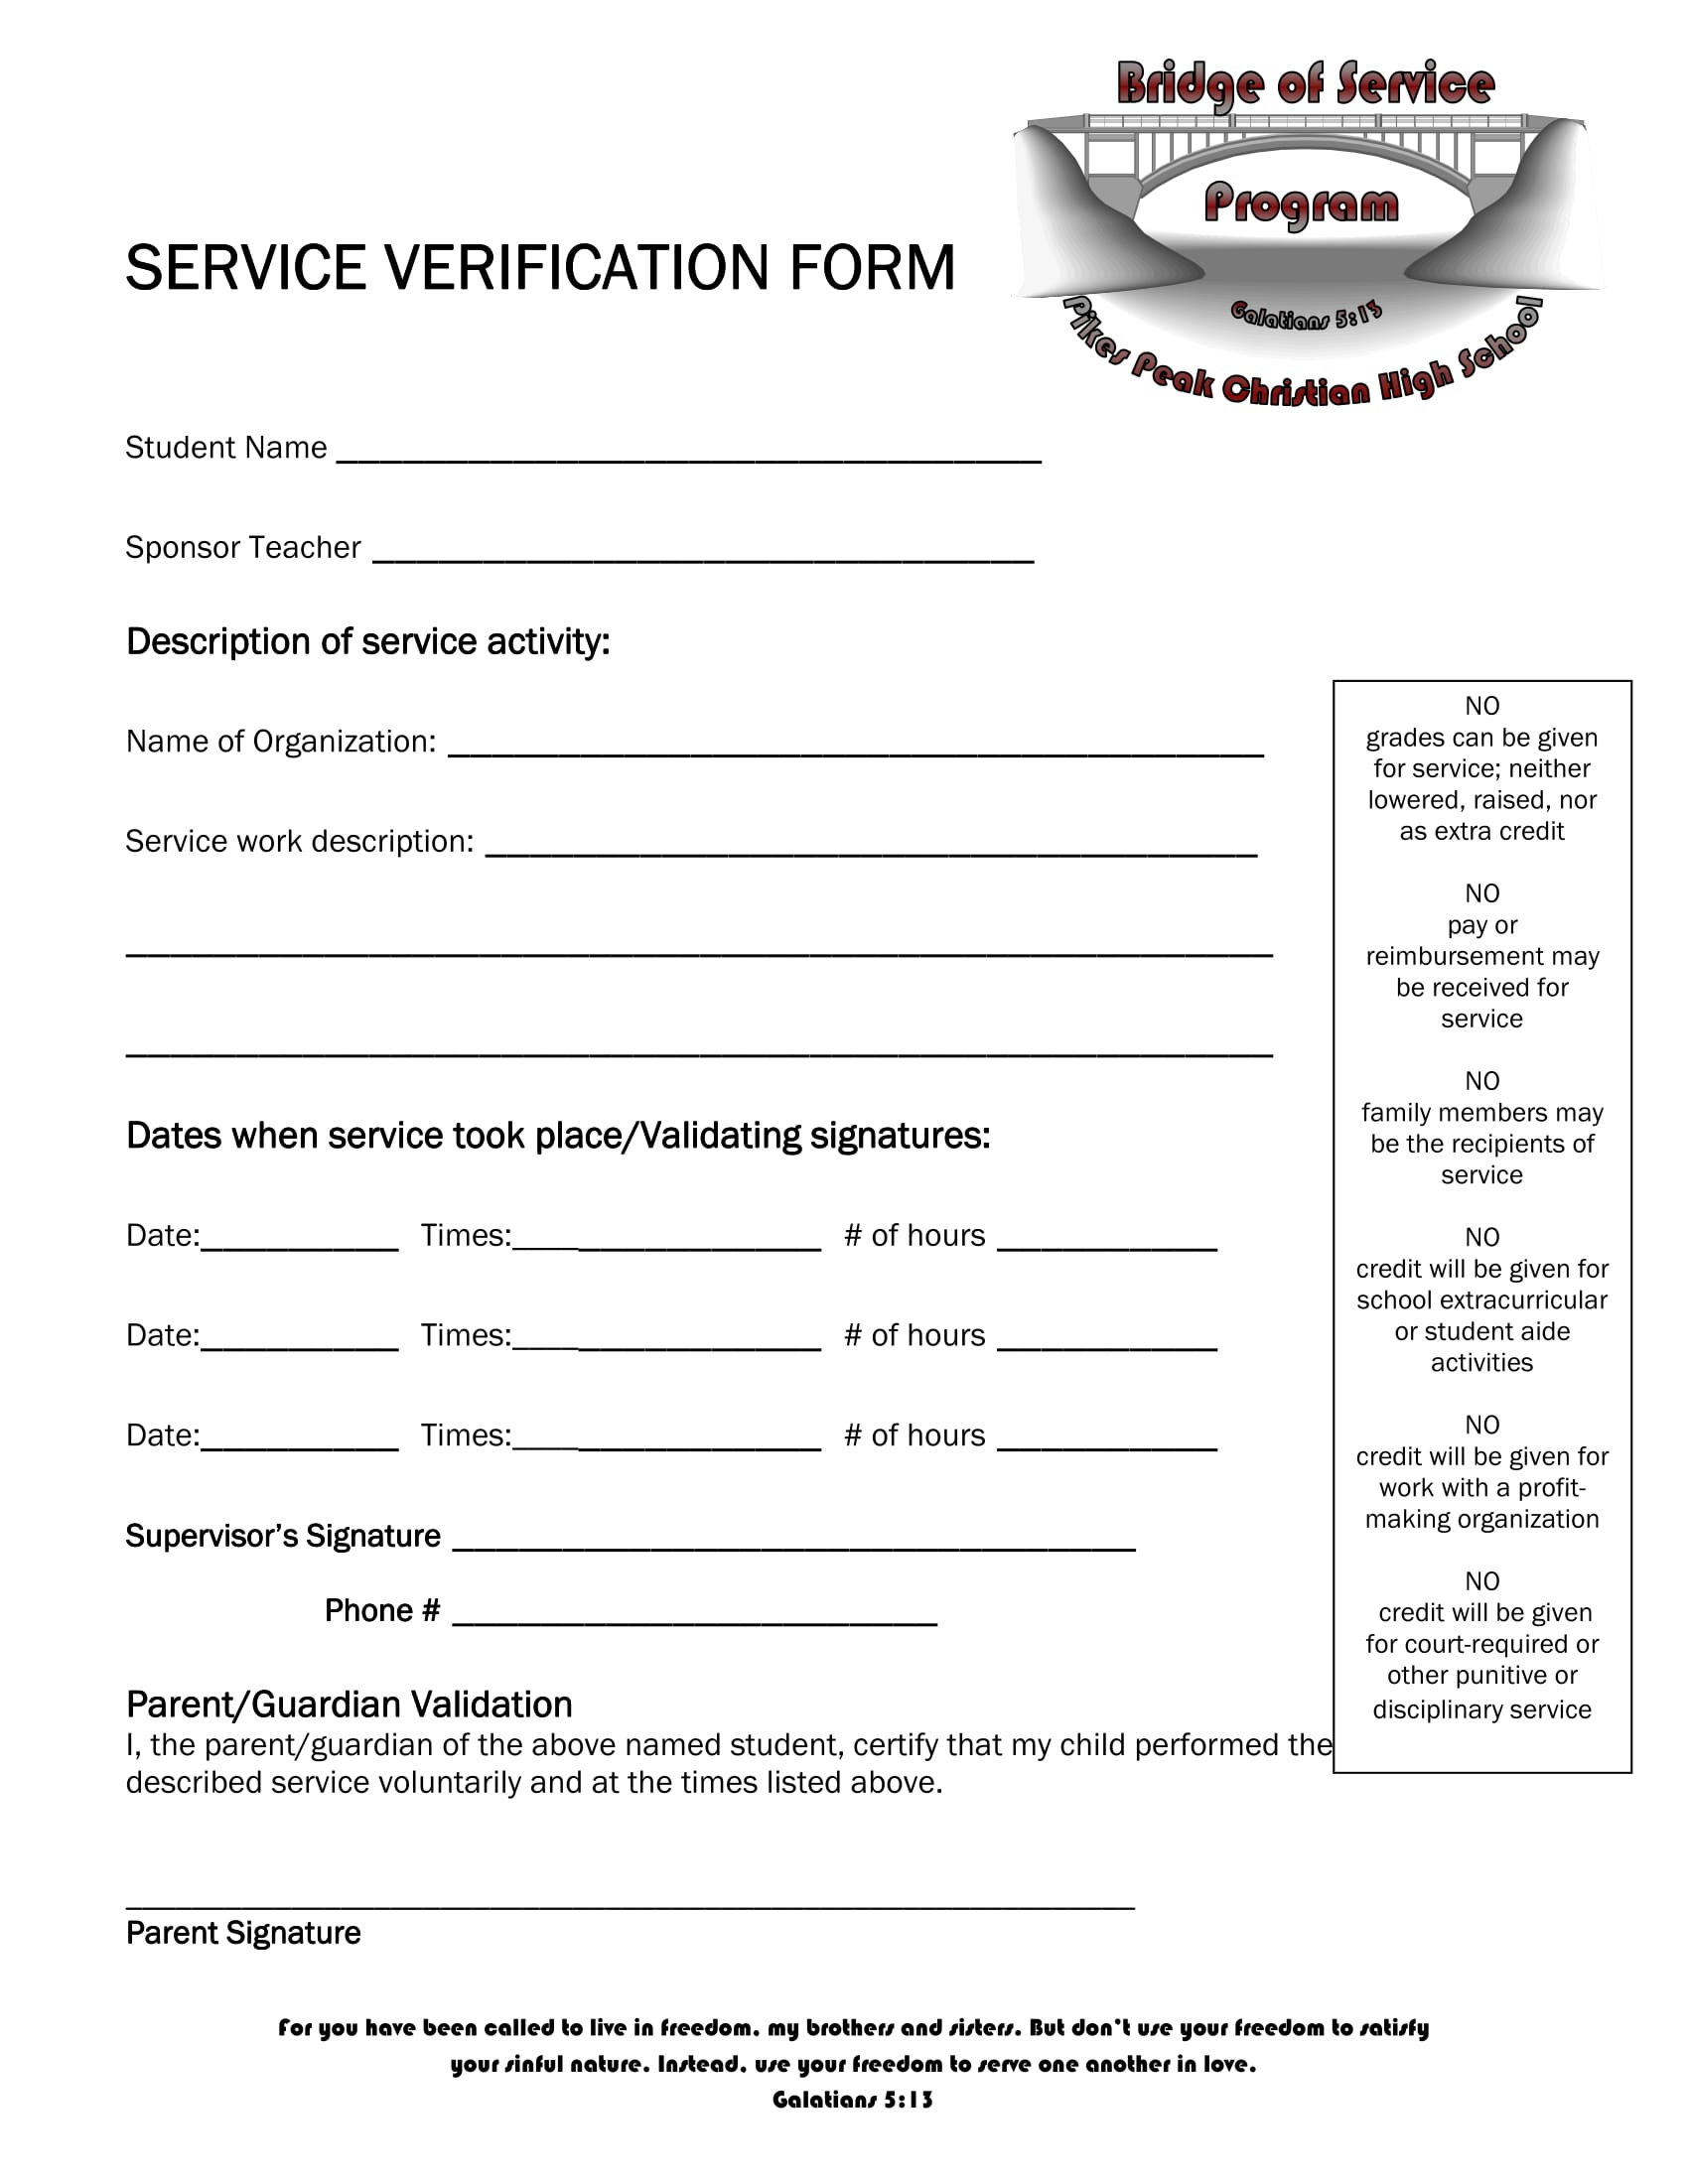 service verification form sample 1